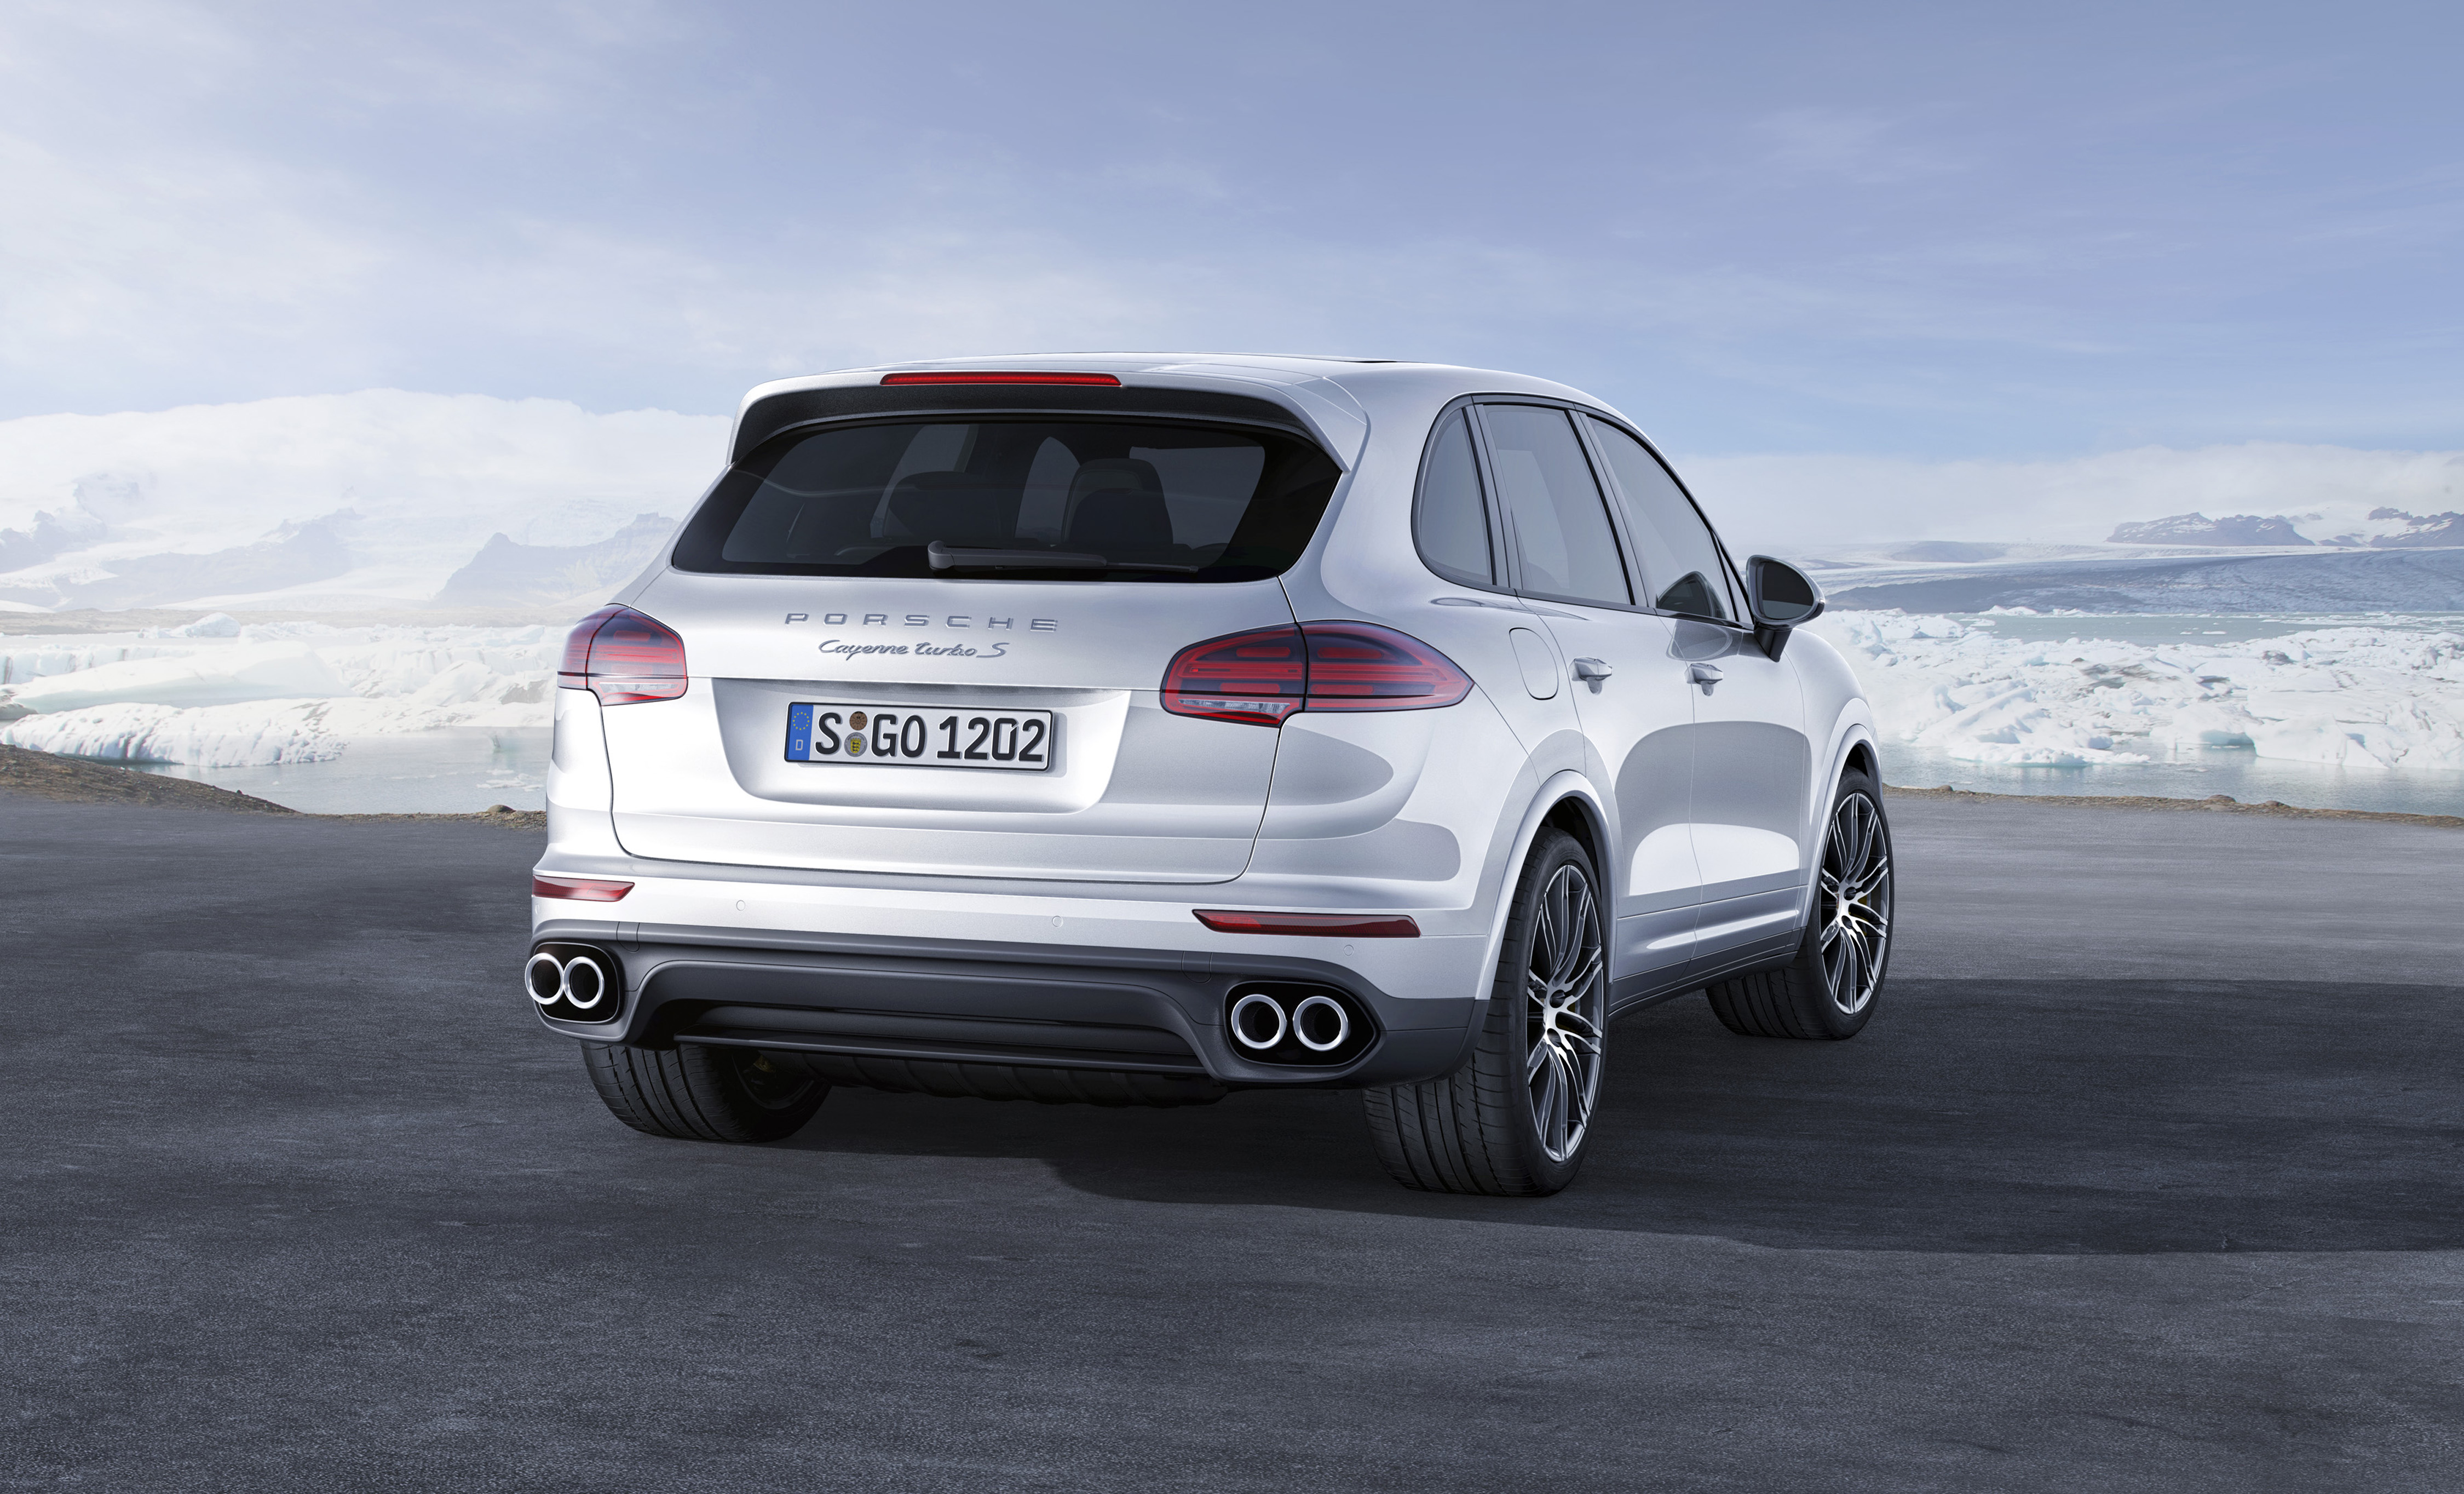 Porsche Cayenne Turbo S wit 2015 03